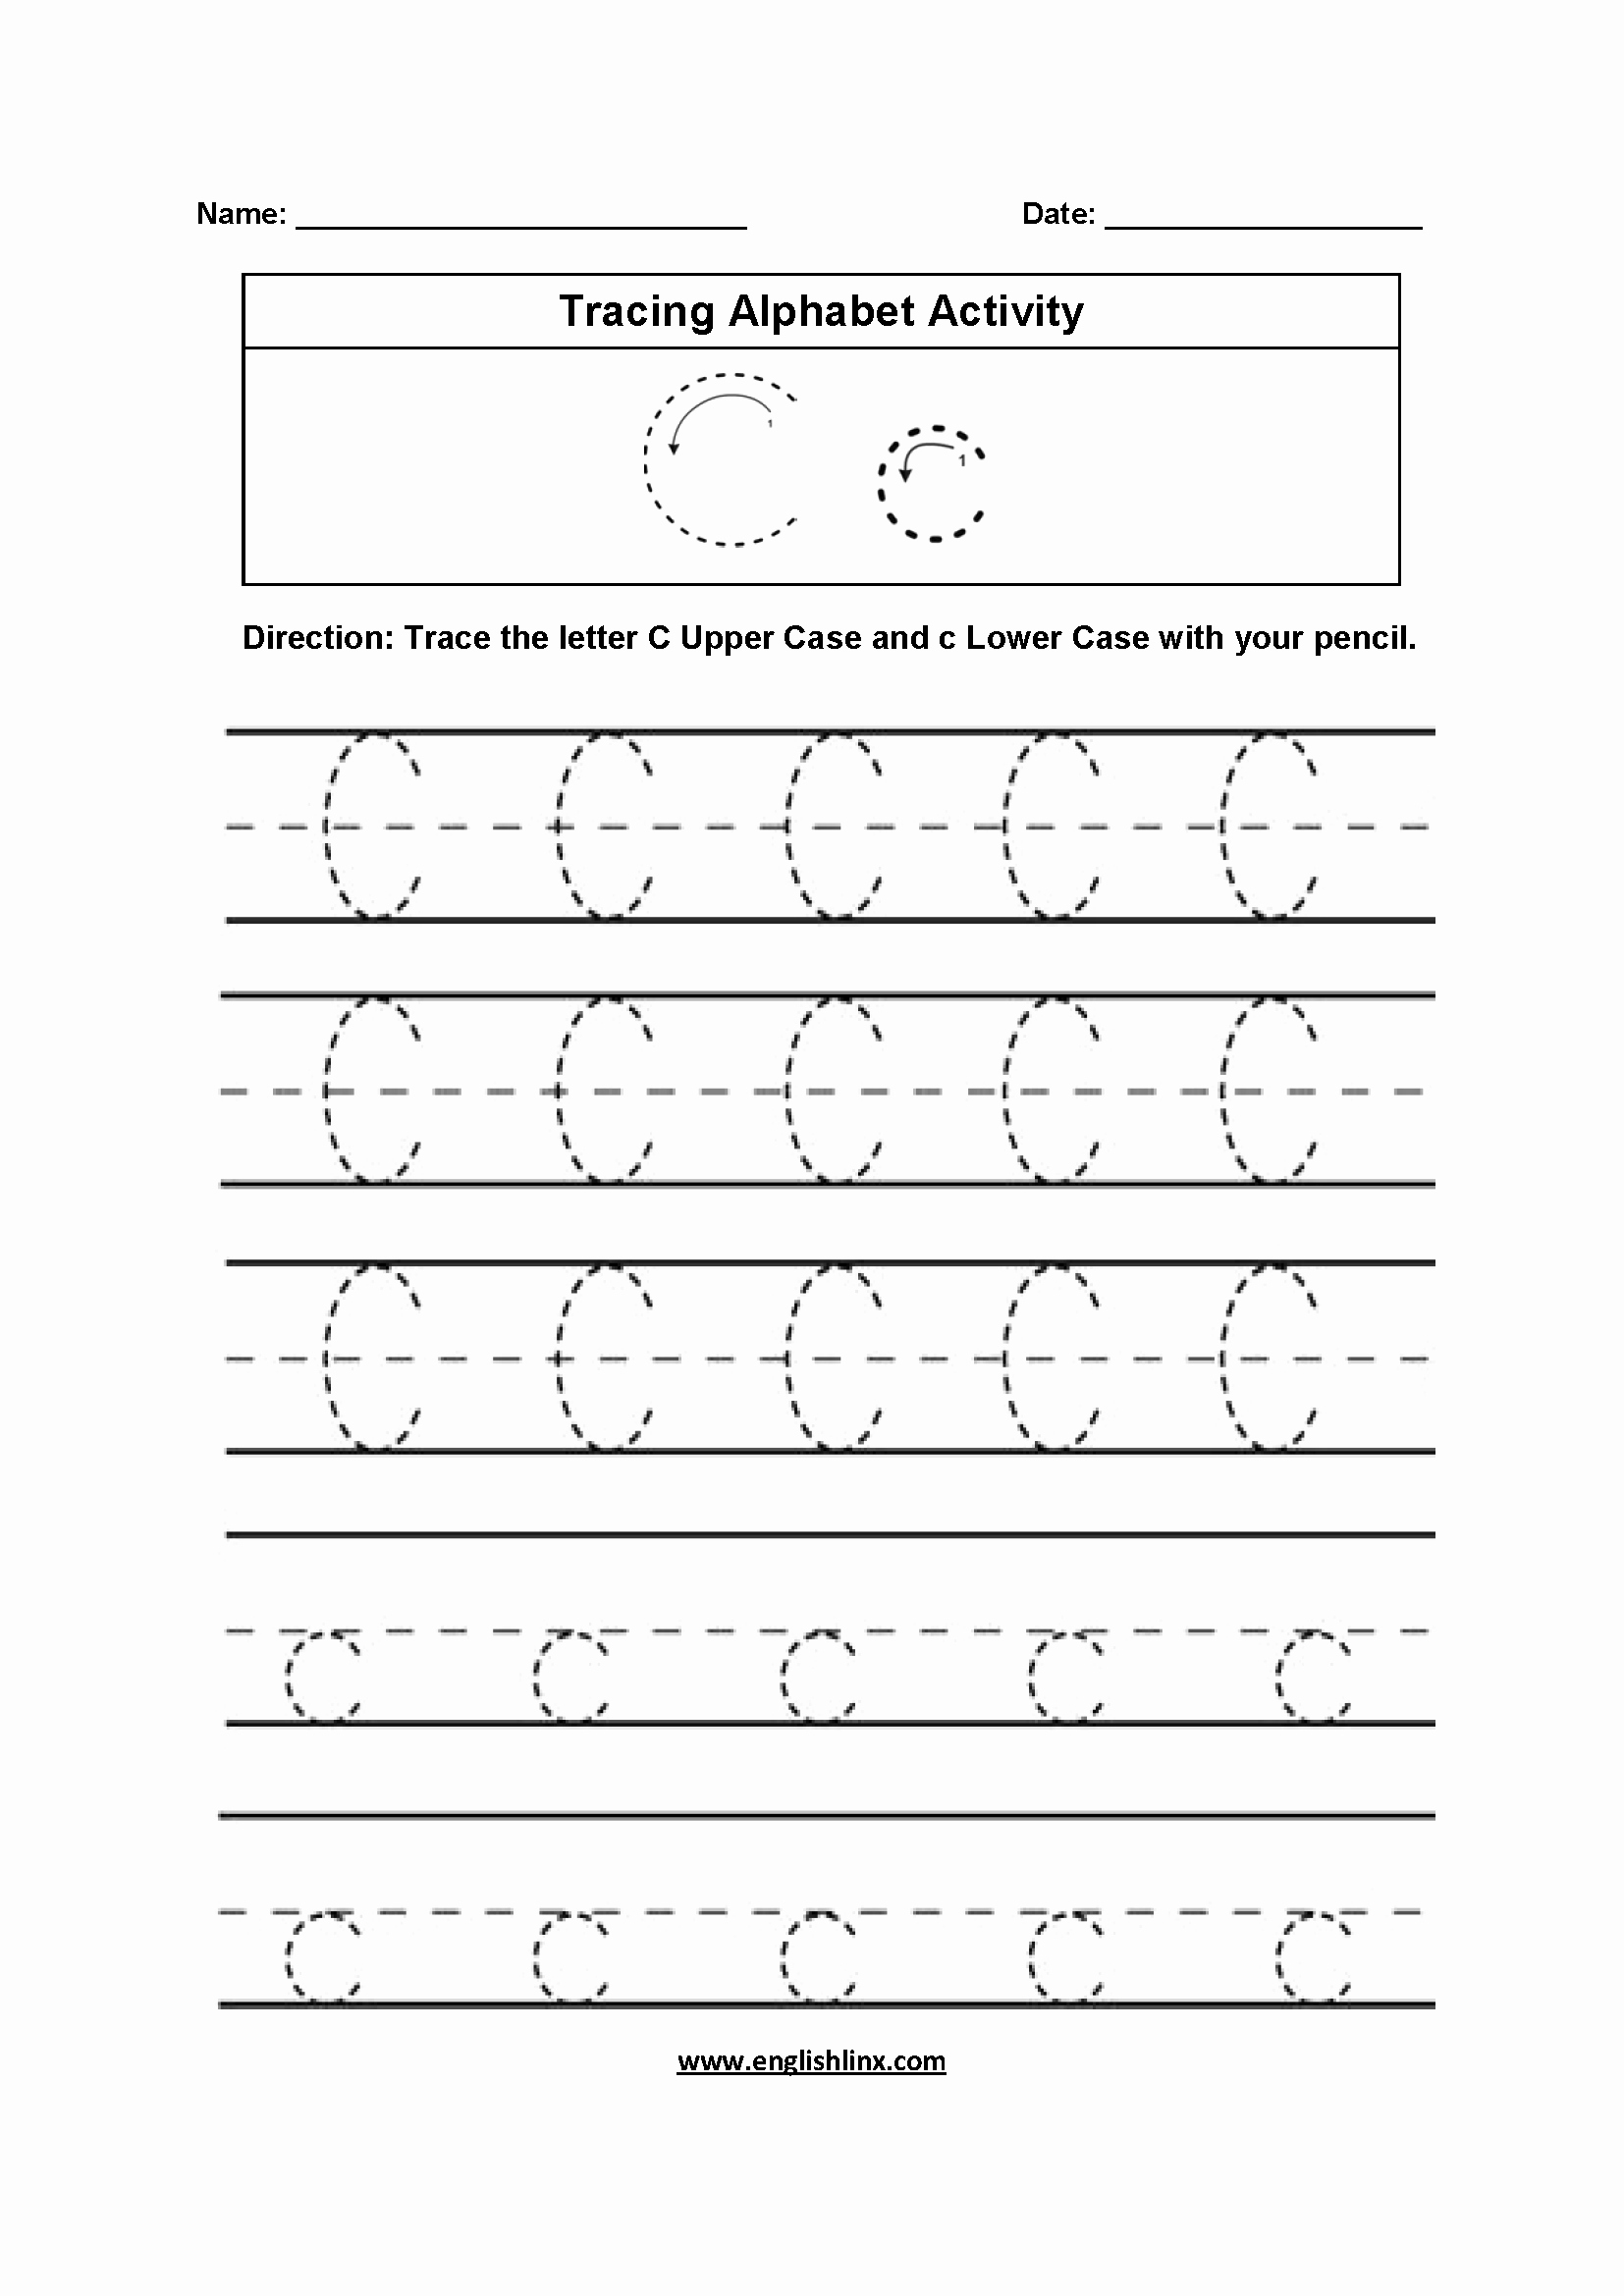 Alphabet Tracing Worksheets Pdf Luxury Tracing Alphabet Letters Worksheets Pdf